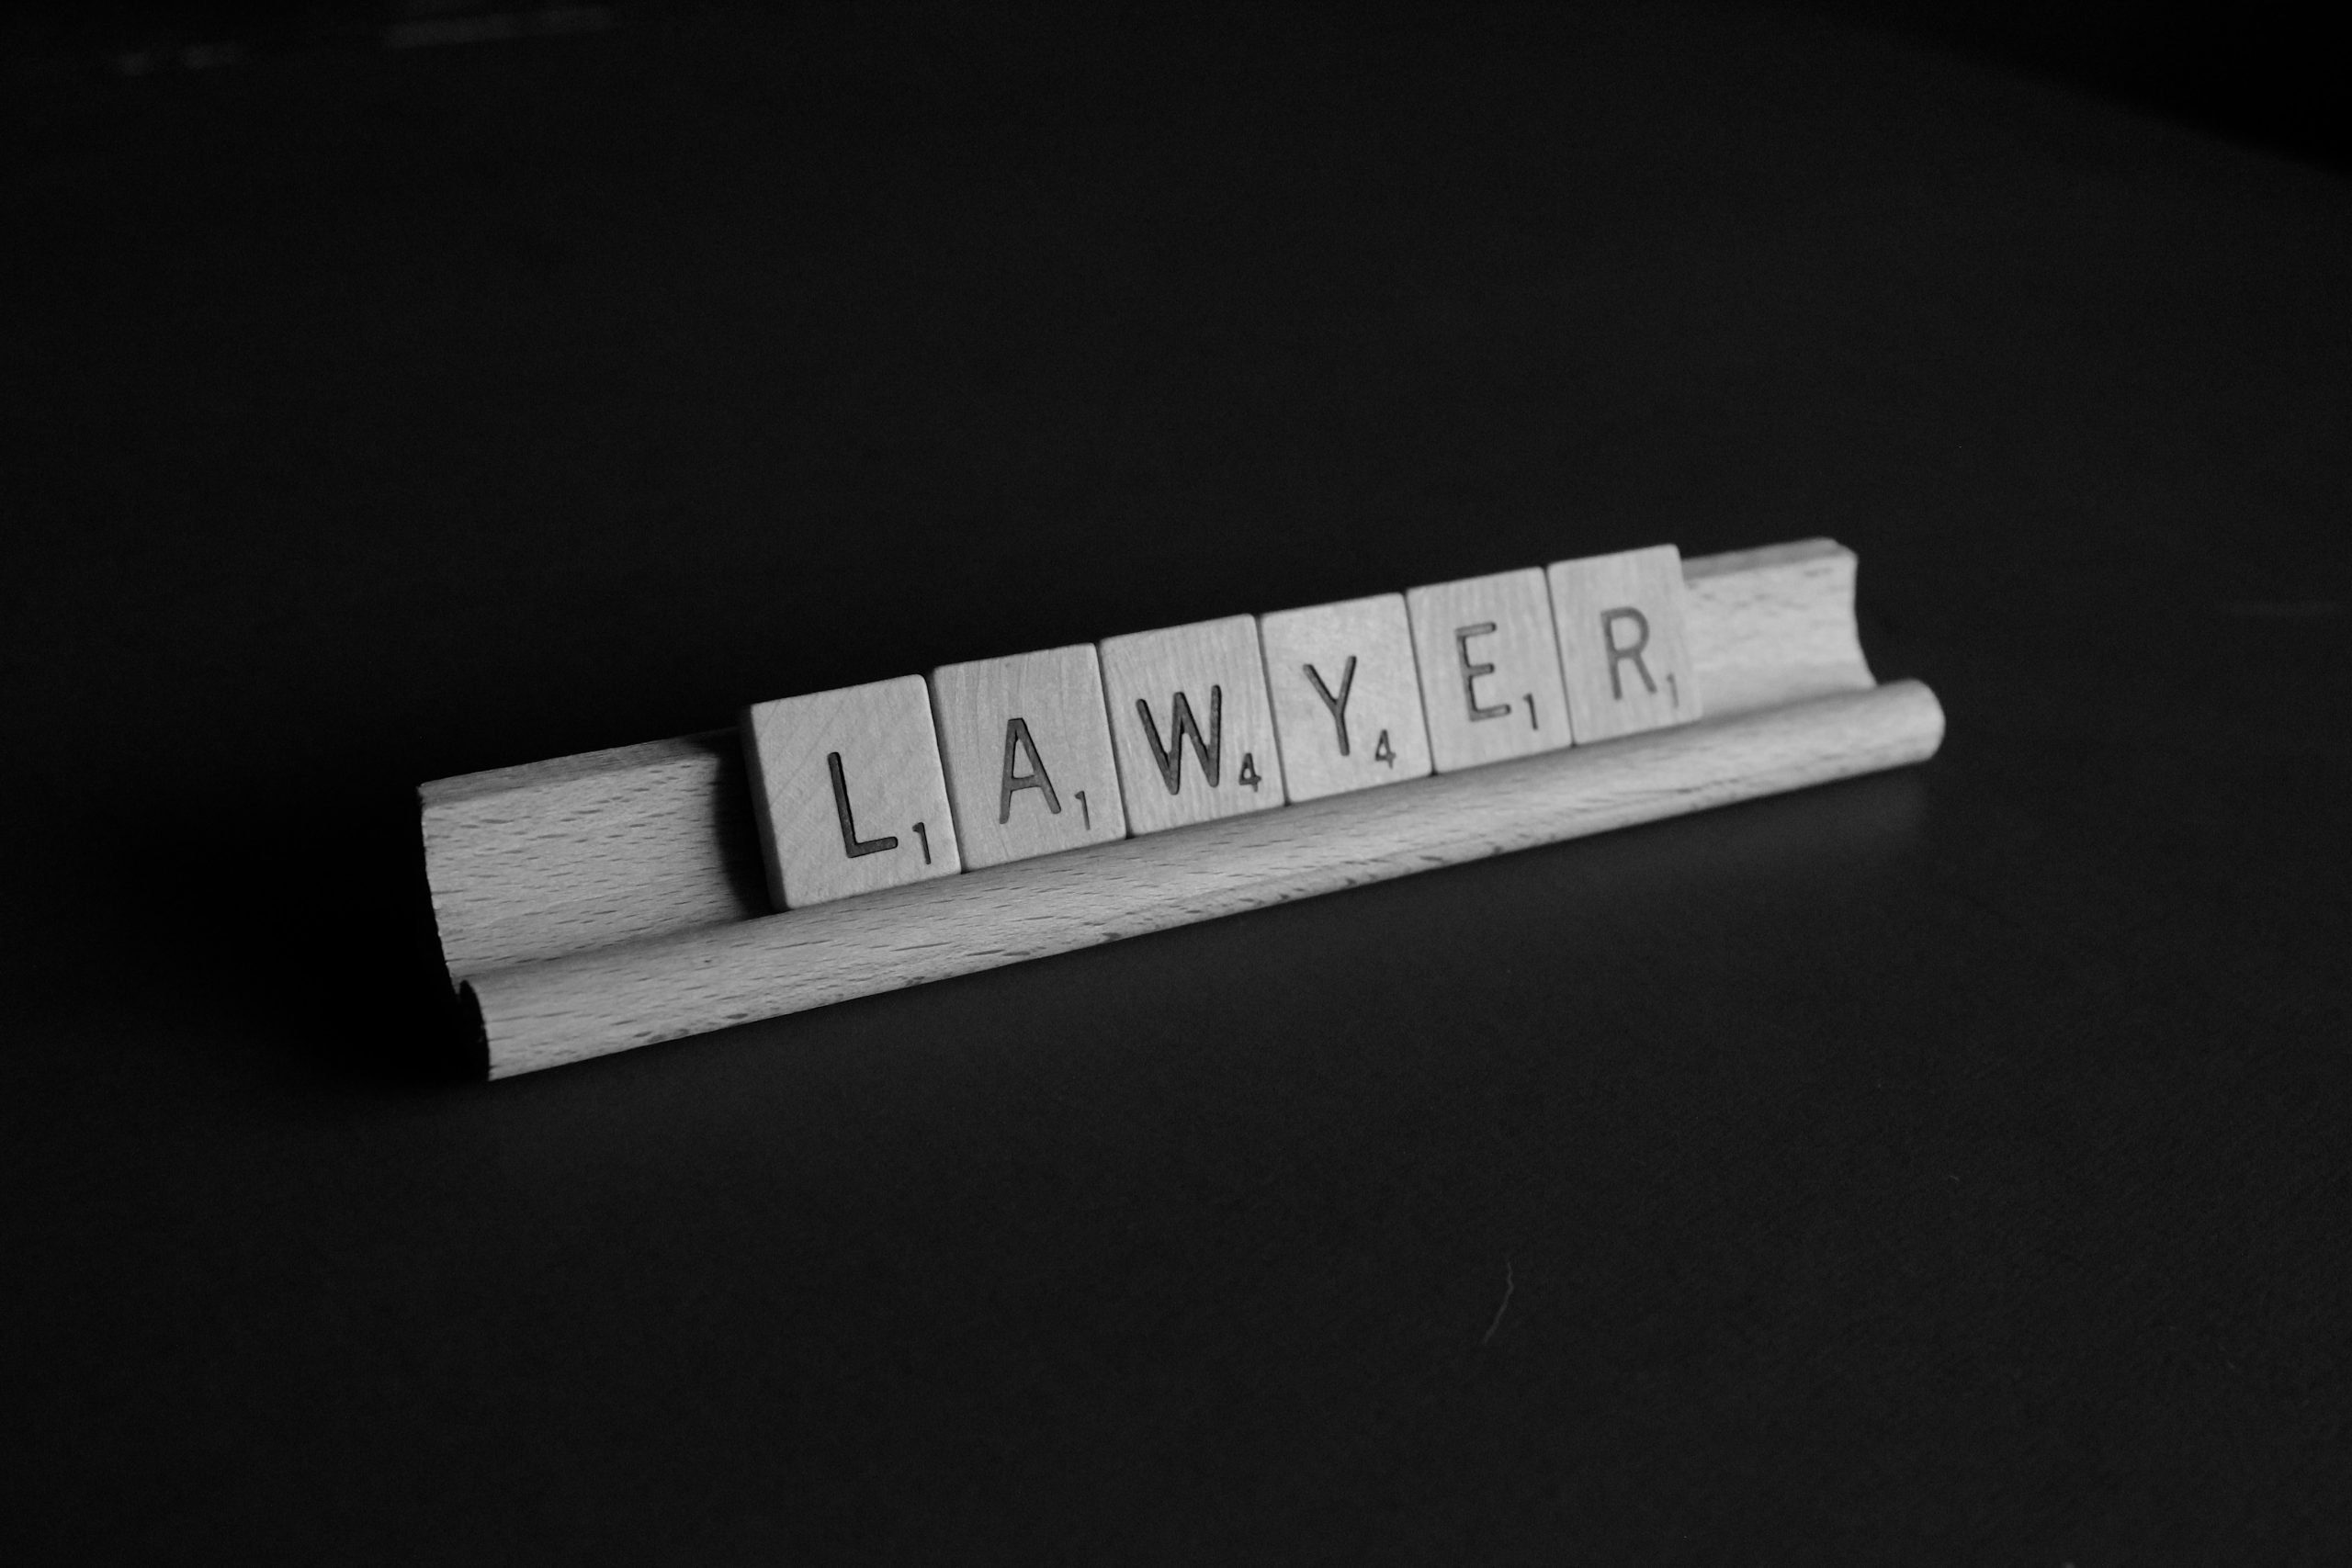 New Jersey Legal Counsel: How to Ask for Help